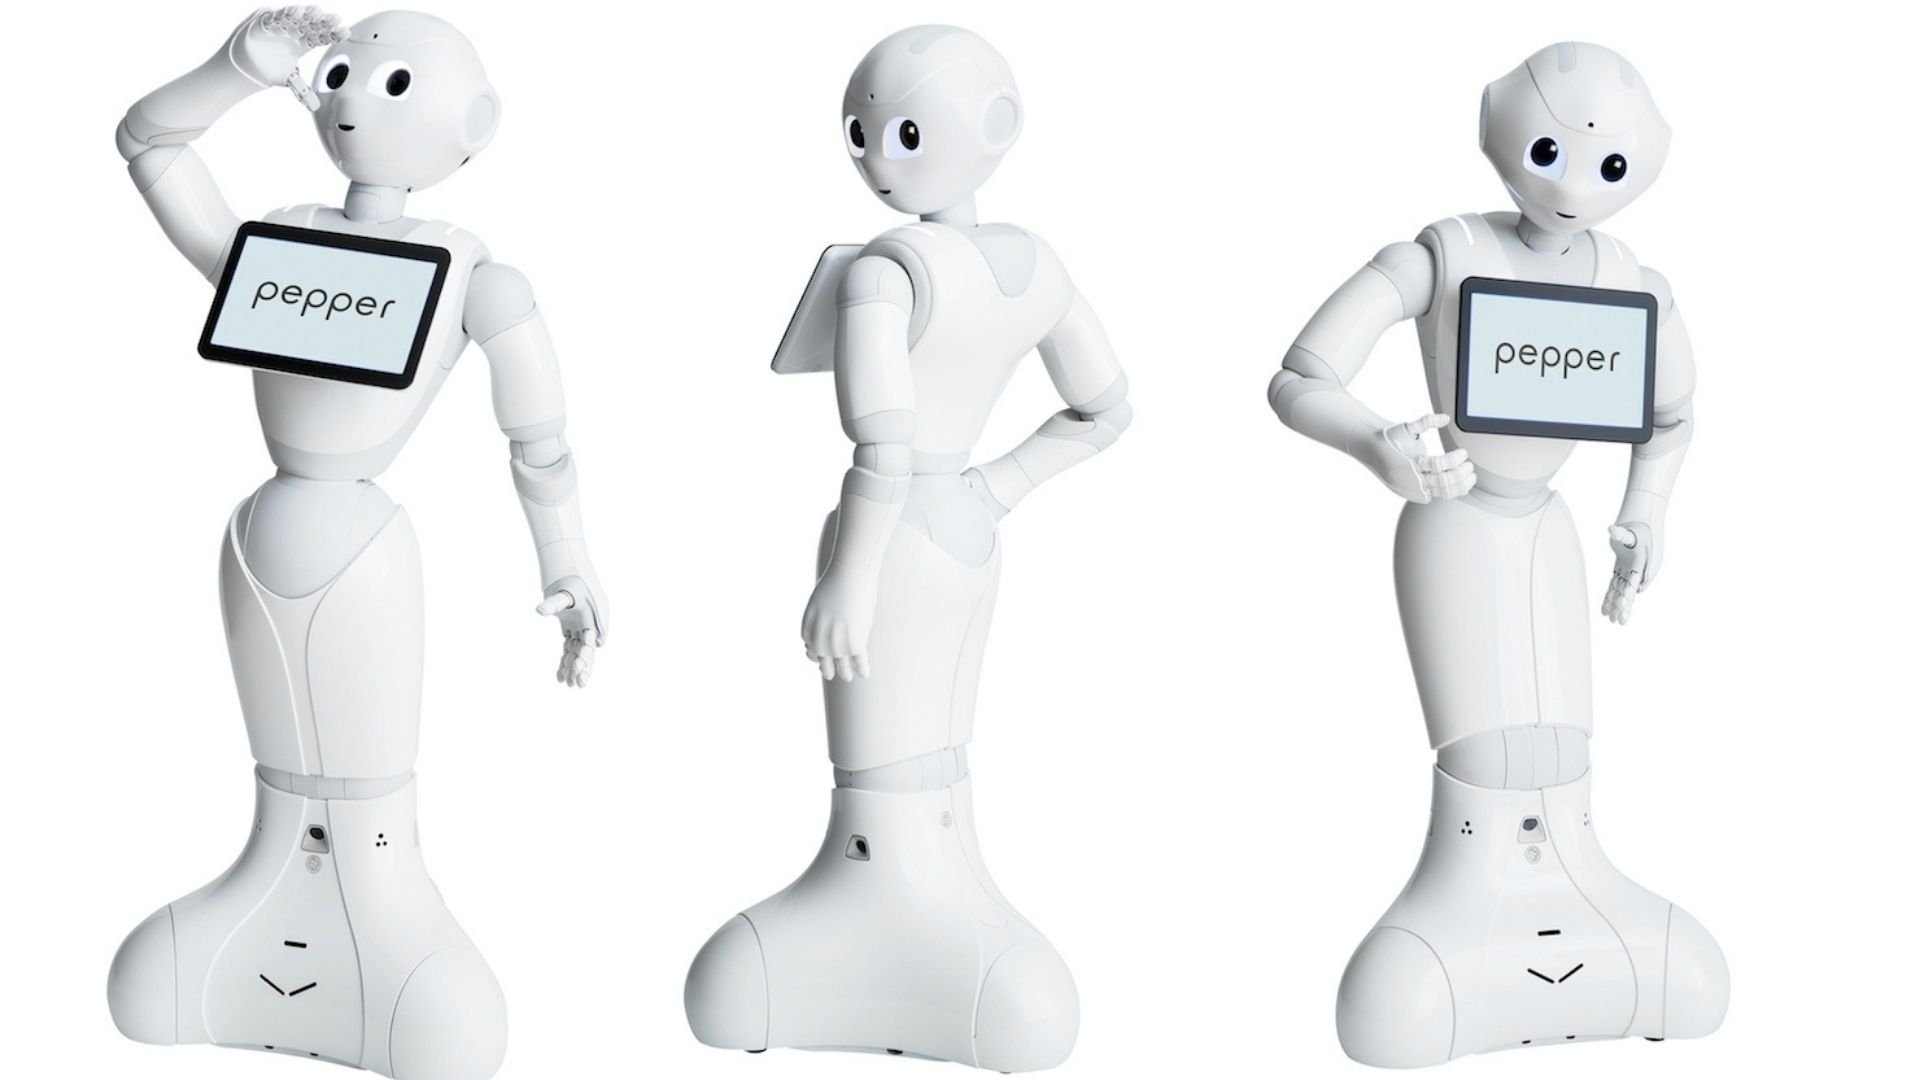 Image of three white 'Pepper' robots in different poses